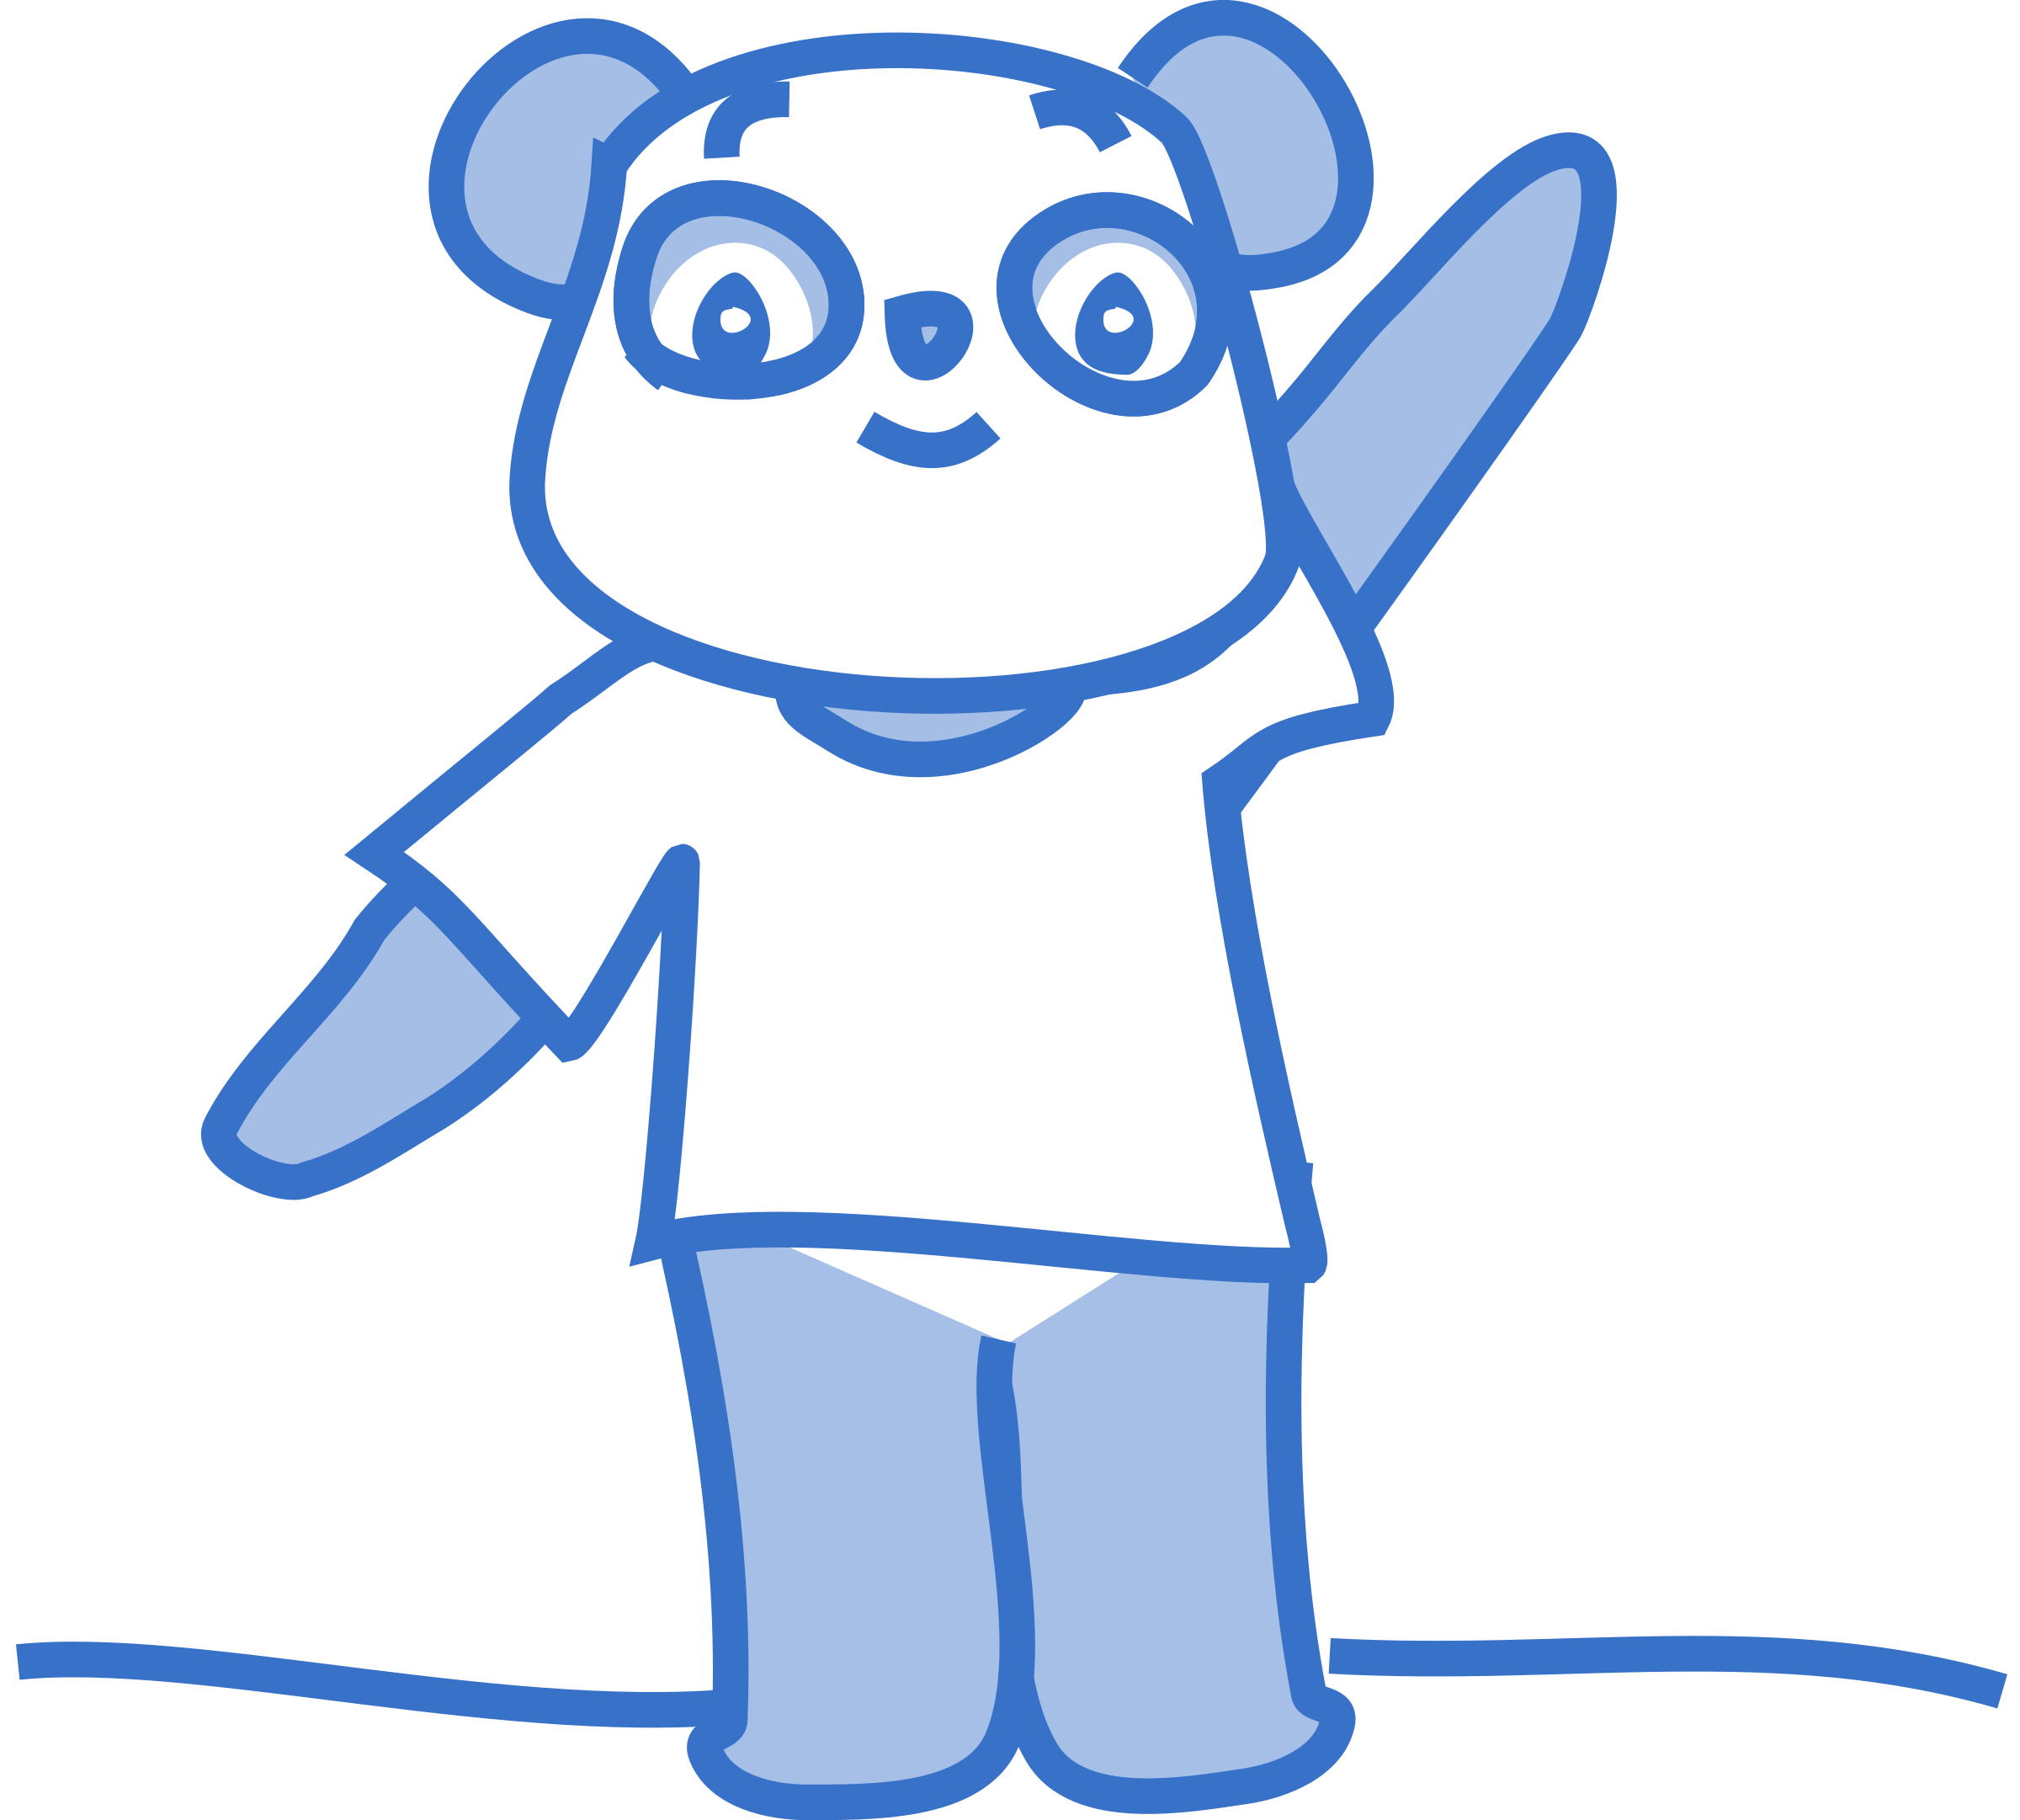 Blue panda png. Happy icons free and